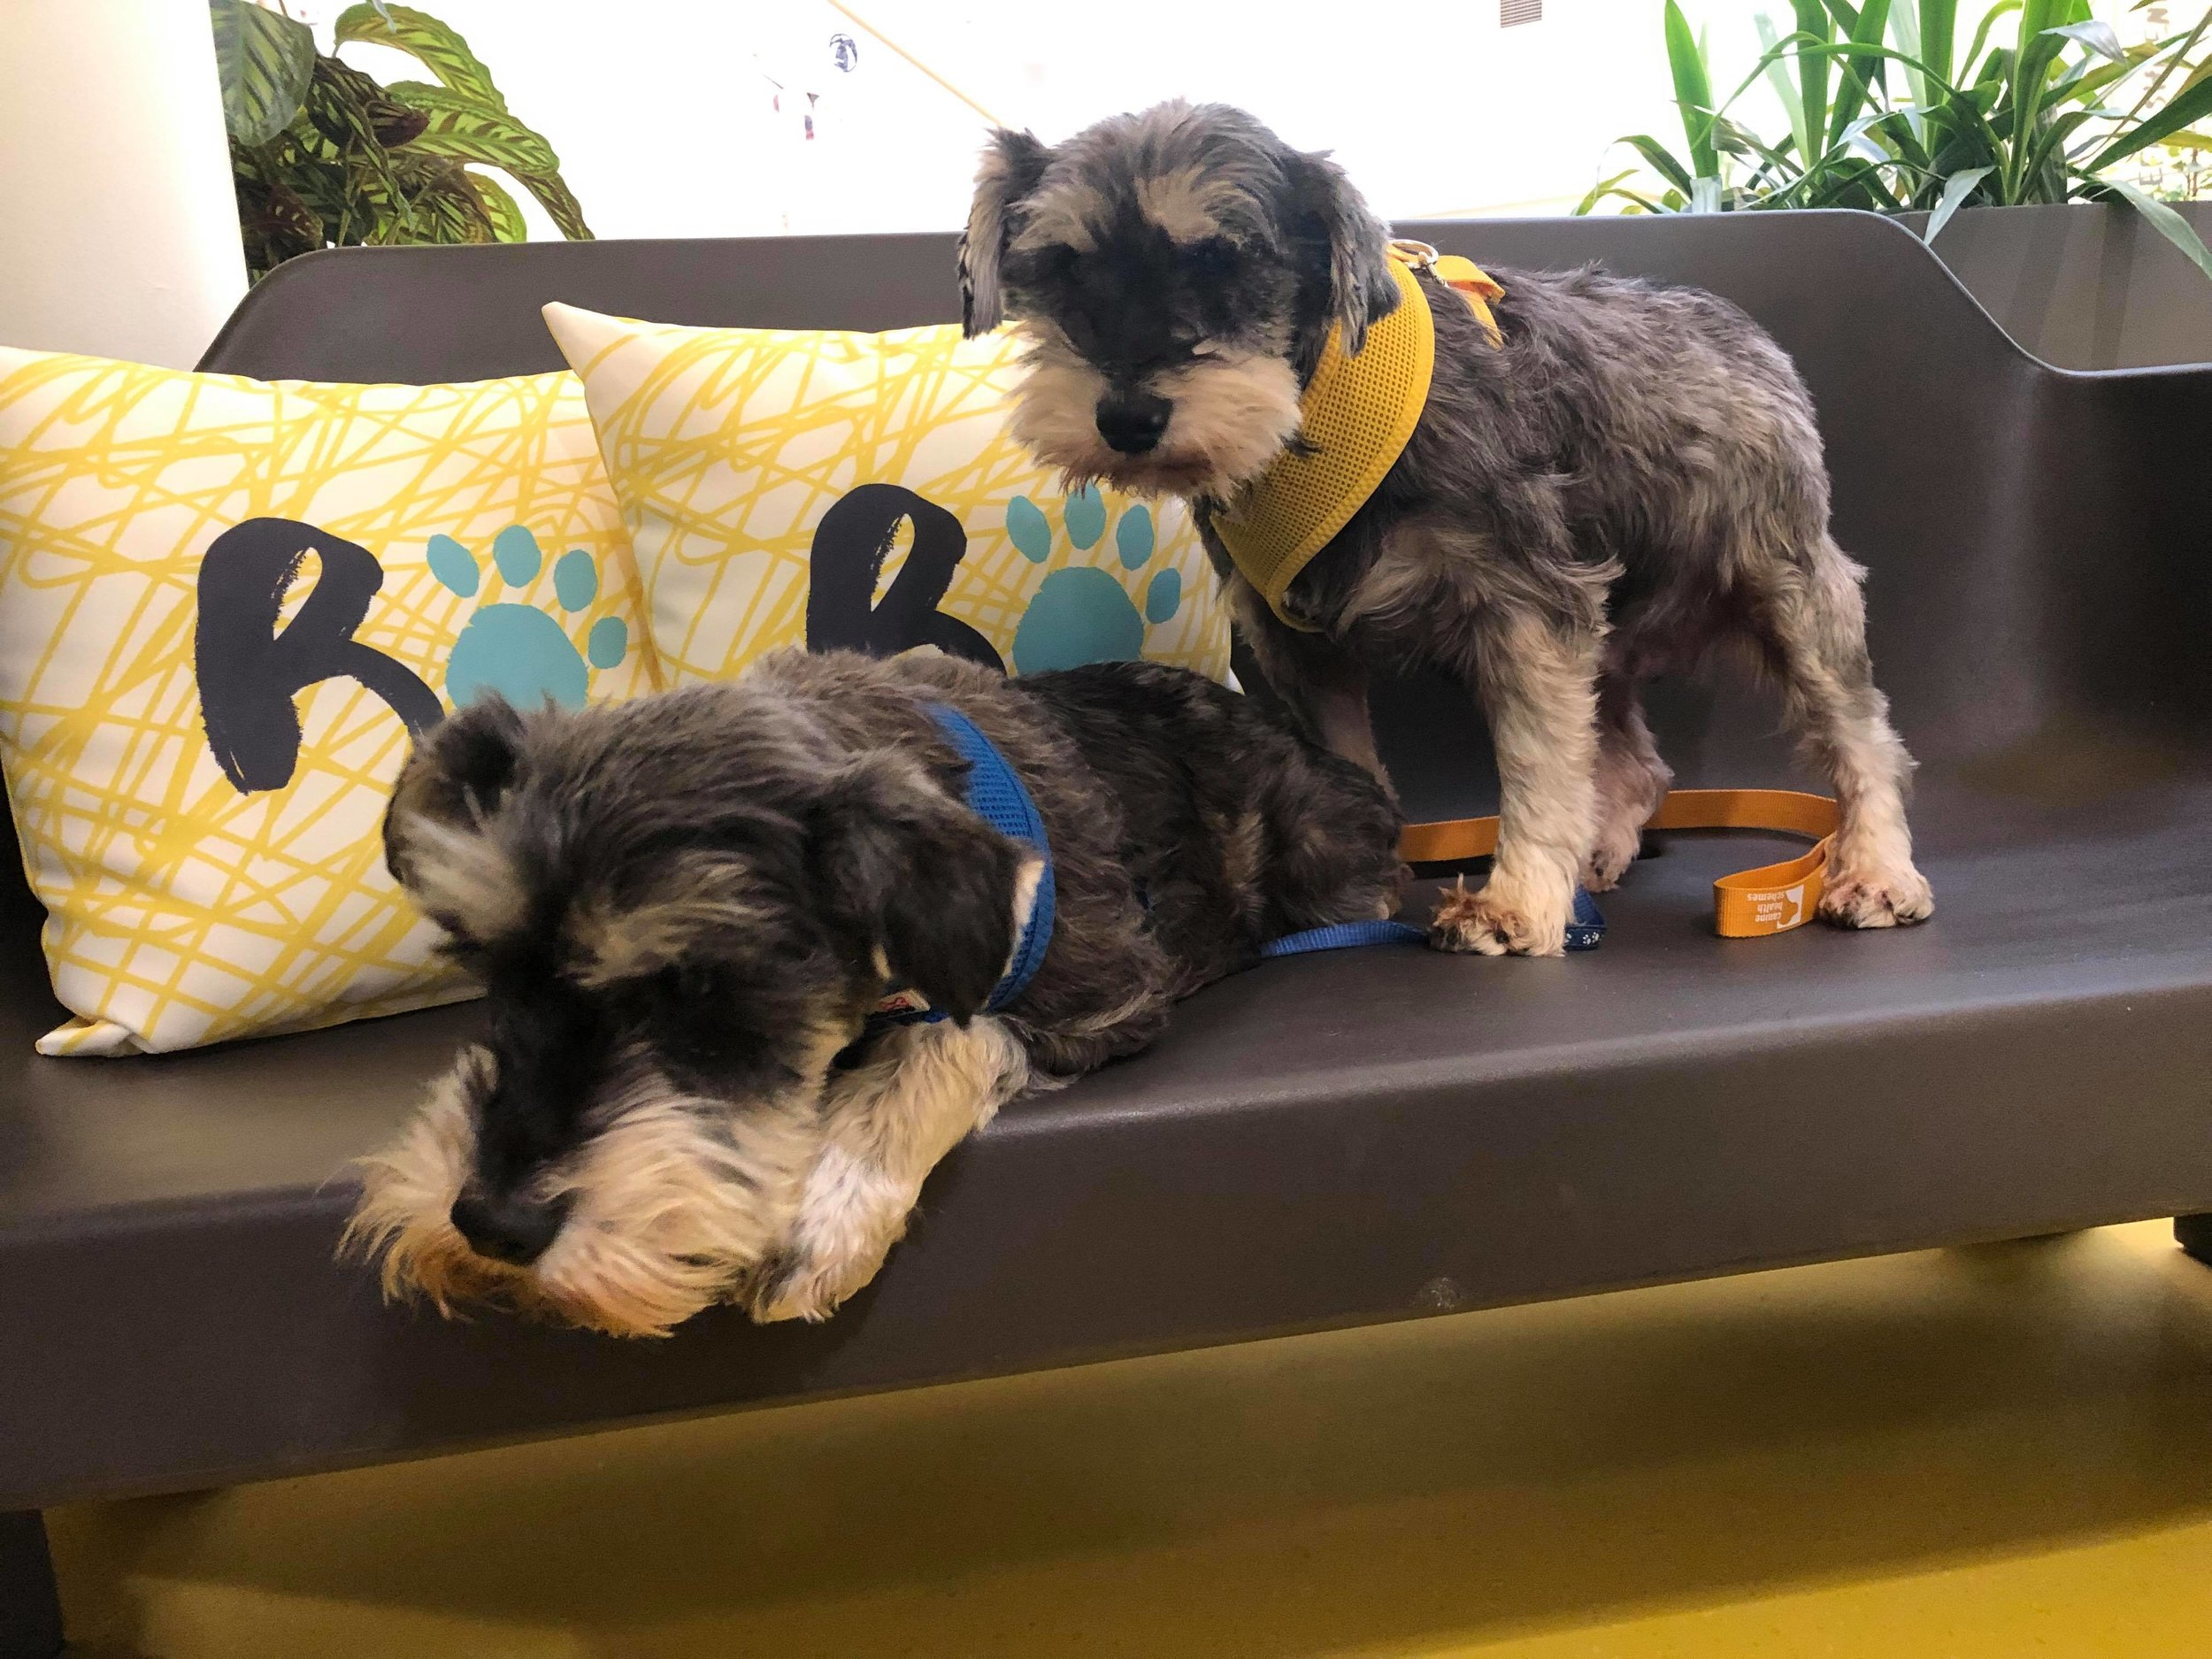 Dennis and Pansy at the Ralph Veterinary Referral Centre